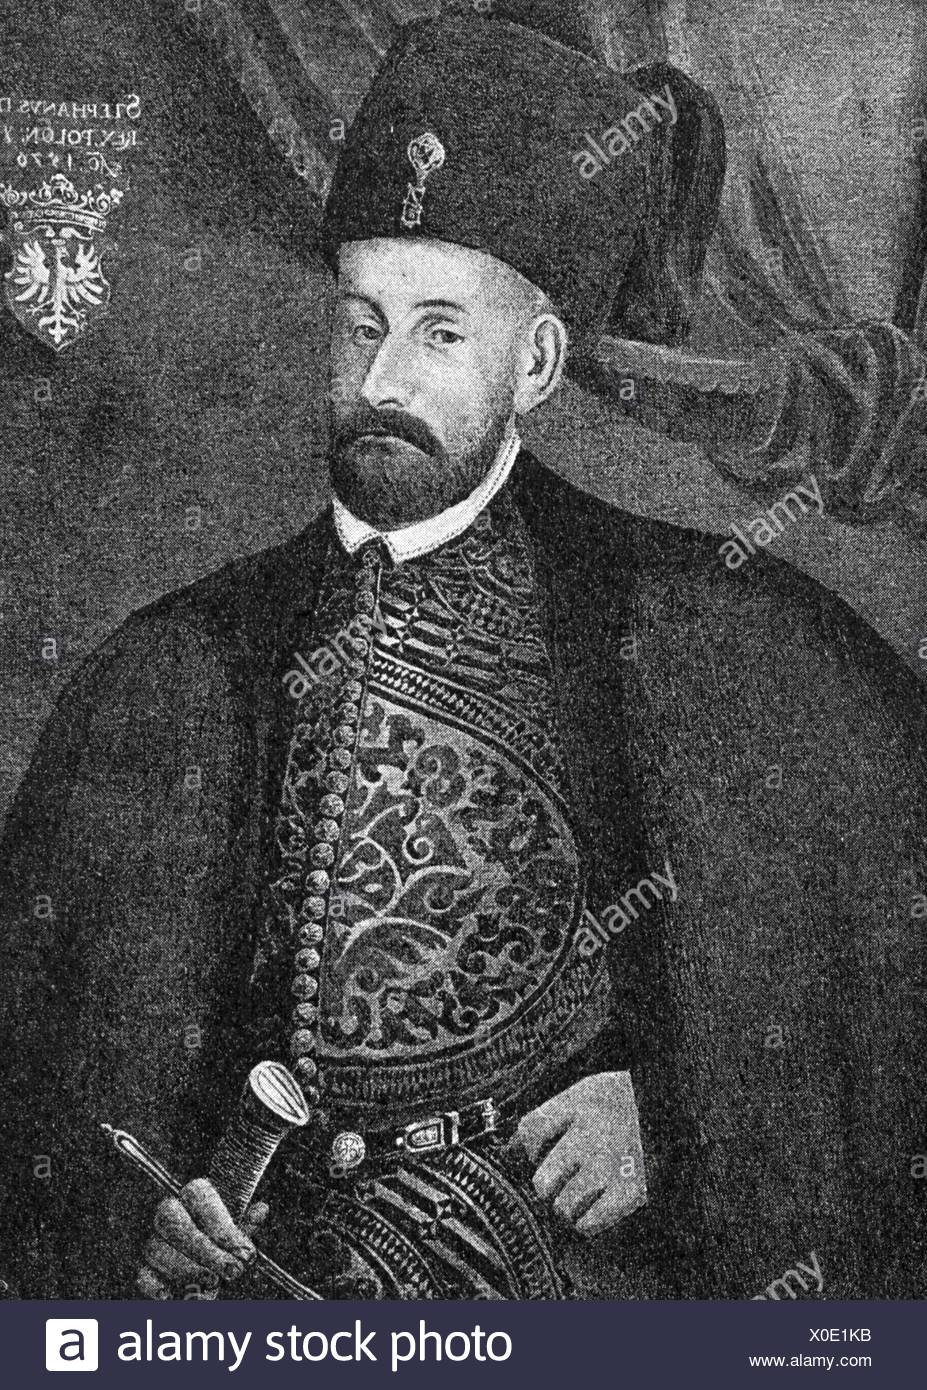 Stephen Bathory, 27.9.1533 - 12.12.1586, King of Poland 14.12.1575 - 12.12.1586, half length, wood engraving, 19th century, after painting, 1576, , Artist's Copyright has not to be cleared - Stock Image